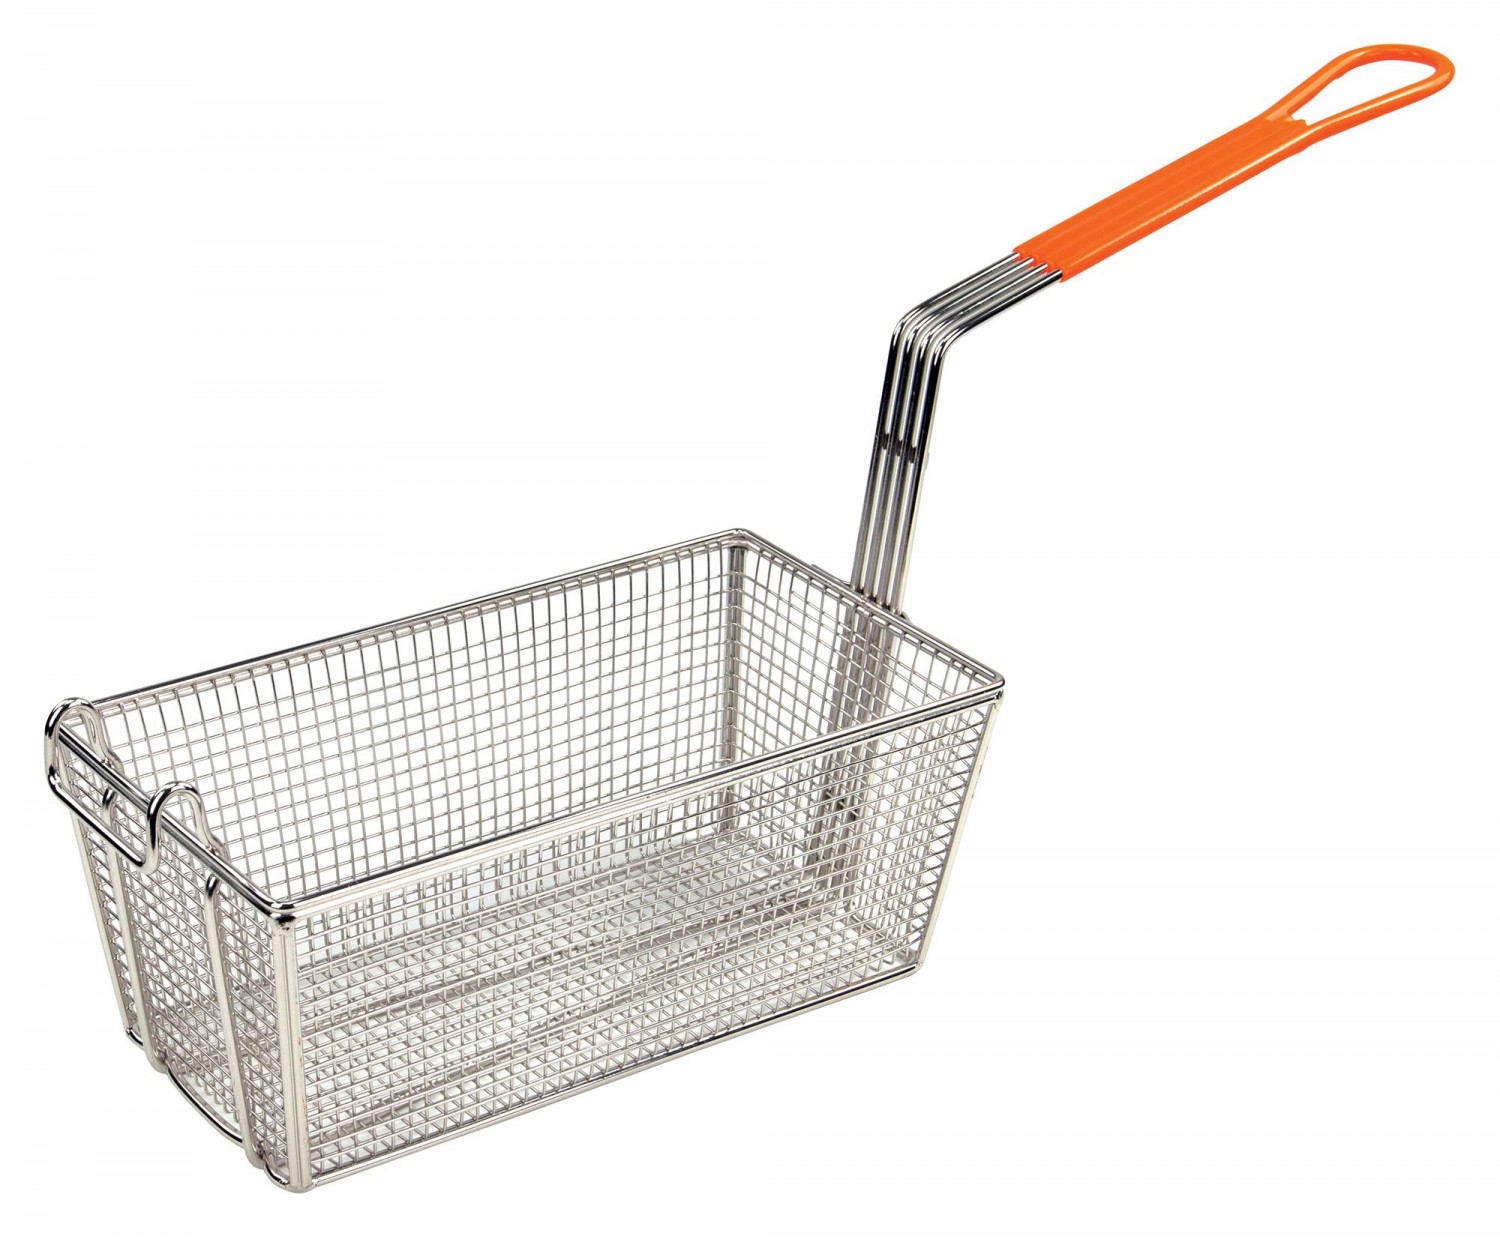 Winco FB-10 Stainless Steel Fry Basket with Orange Handle